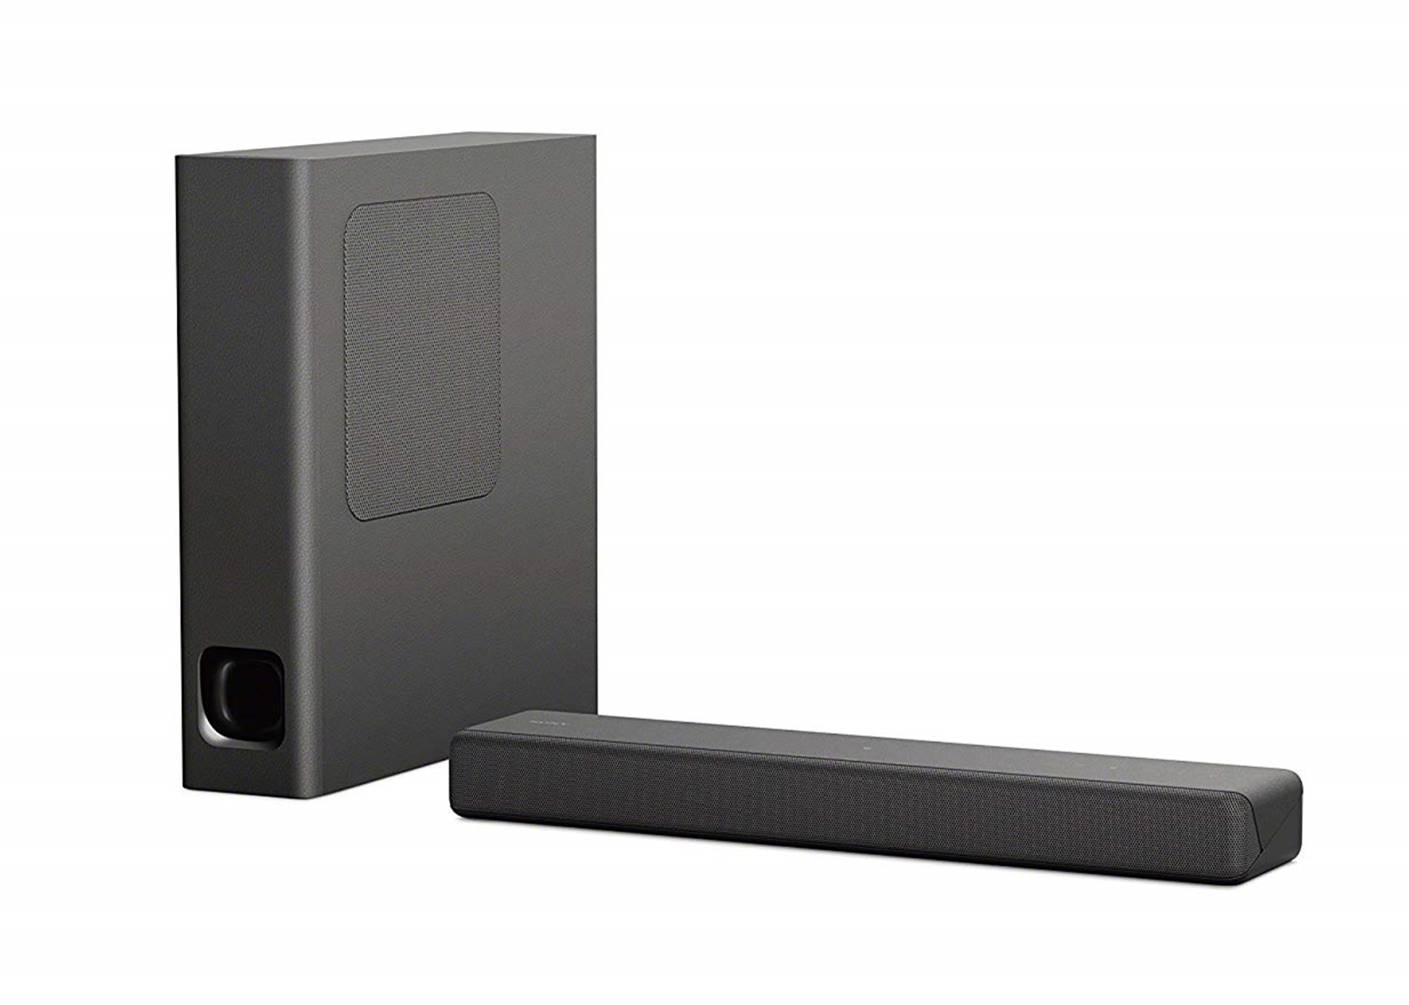 Sony HT-MT300B Soundbar with Wireless Subwoofer